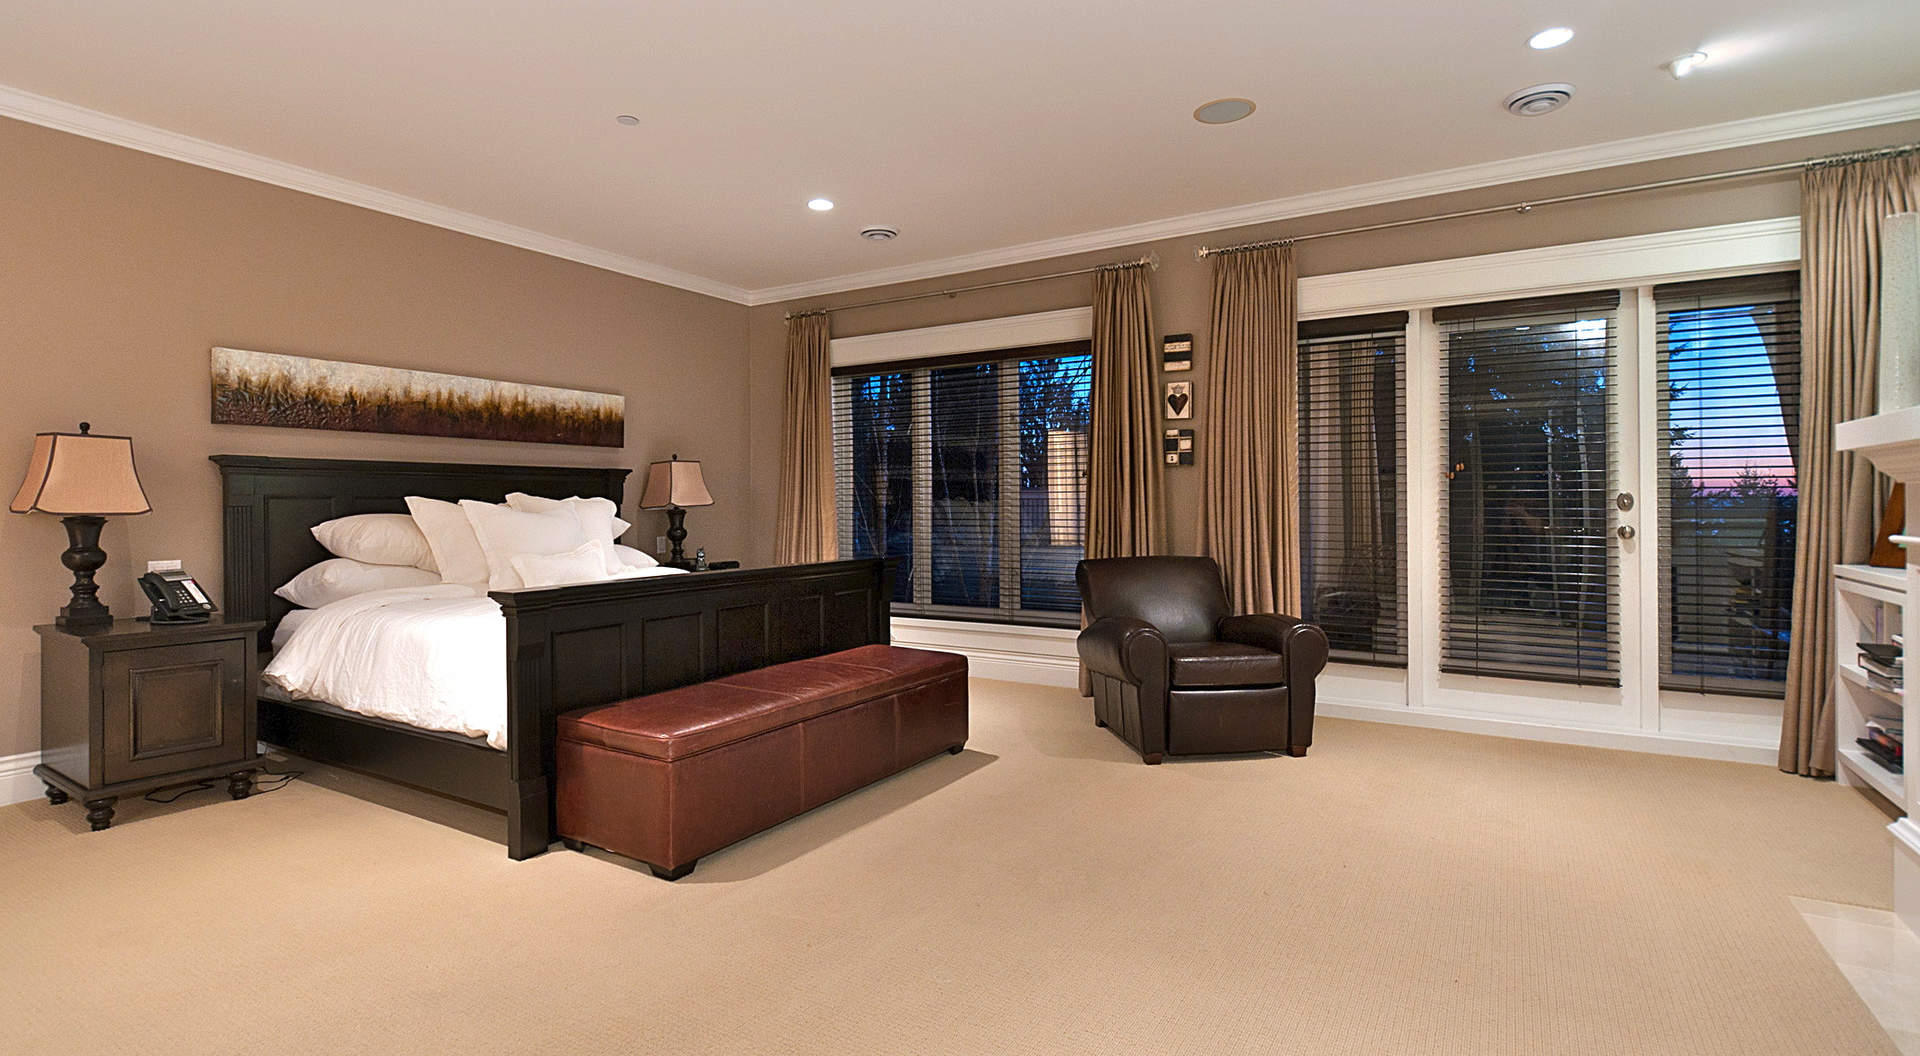 Spacious Master Bedroom with Separate Sitting Area